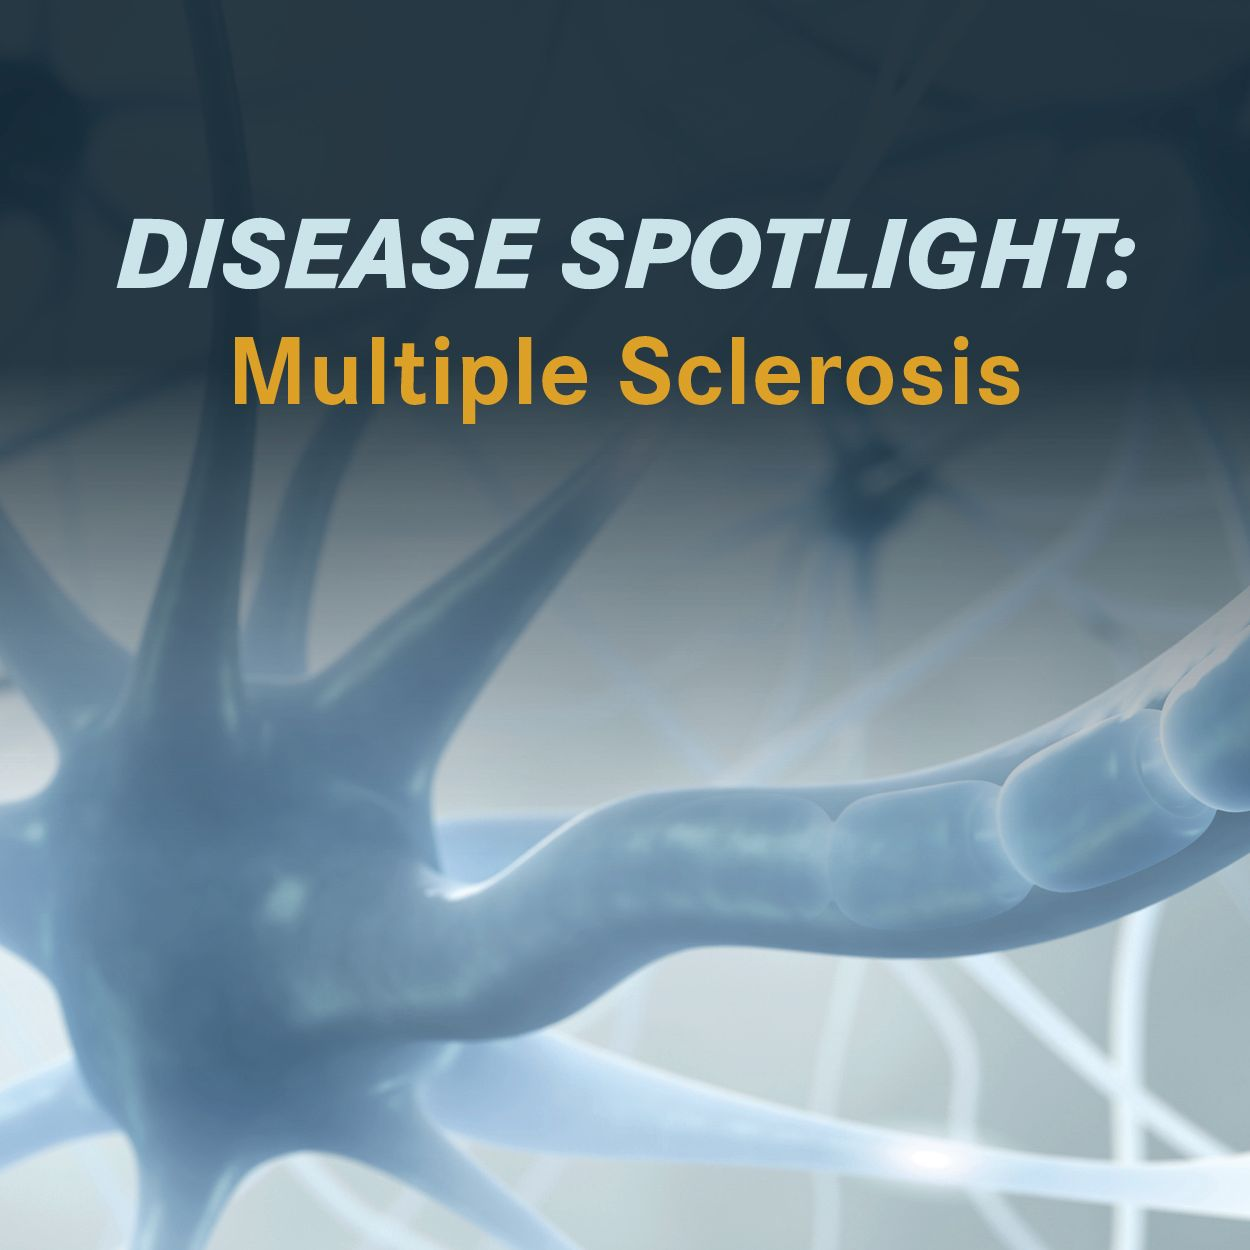 Disease Spotlight | <b>Disease Spotlight: Multiple Sclerosis</b>